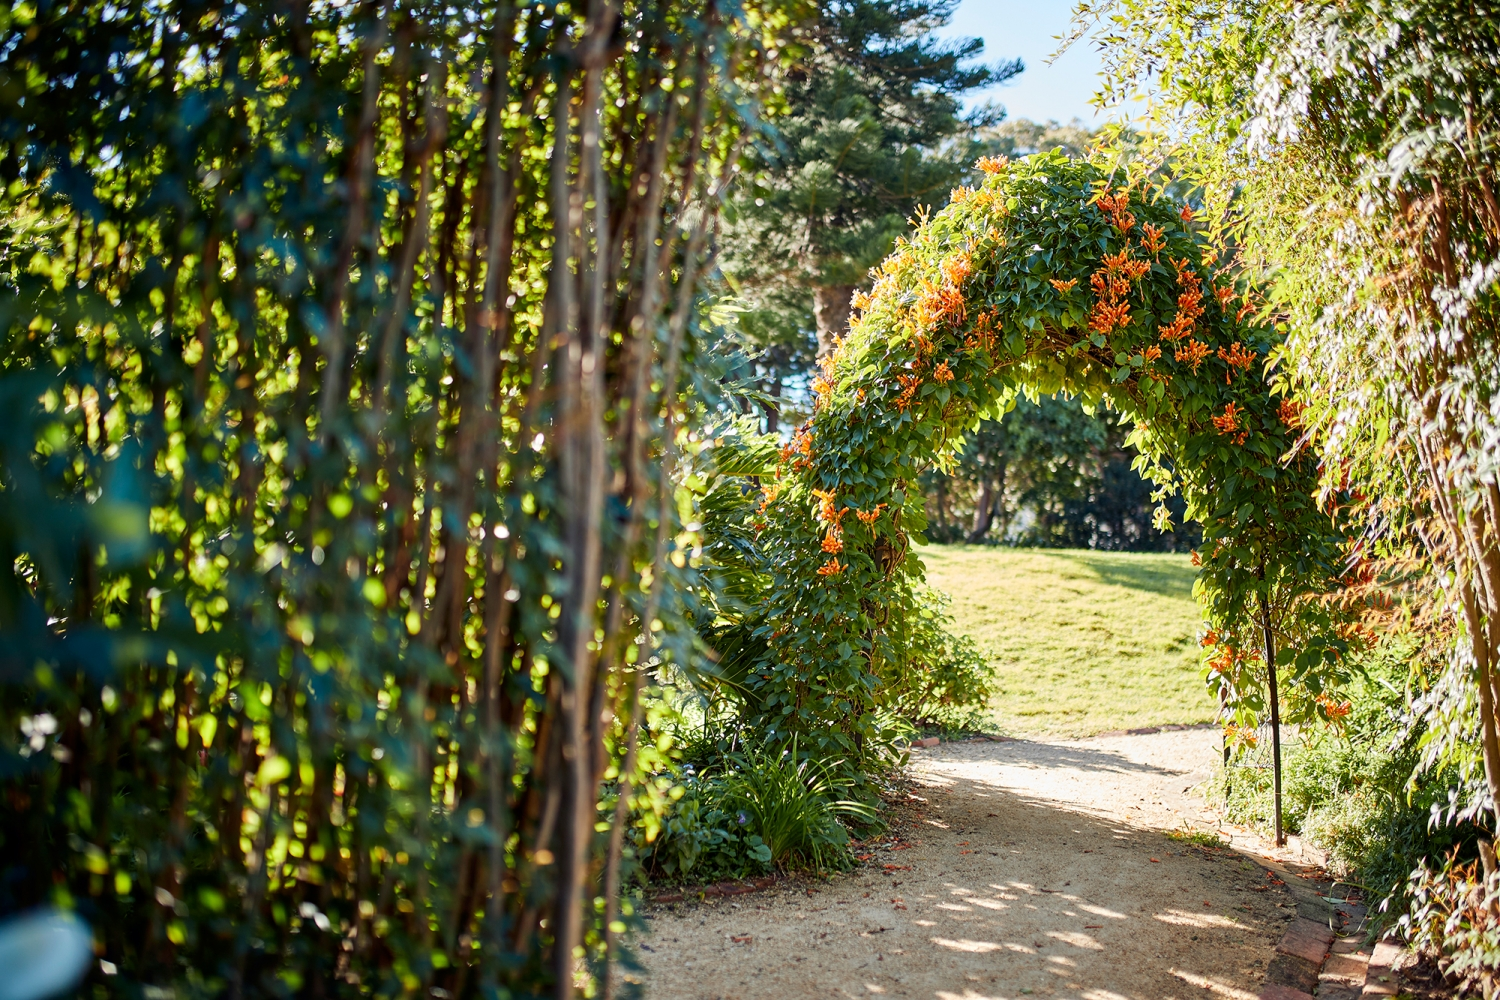 View through floral archway along garden path.